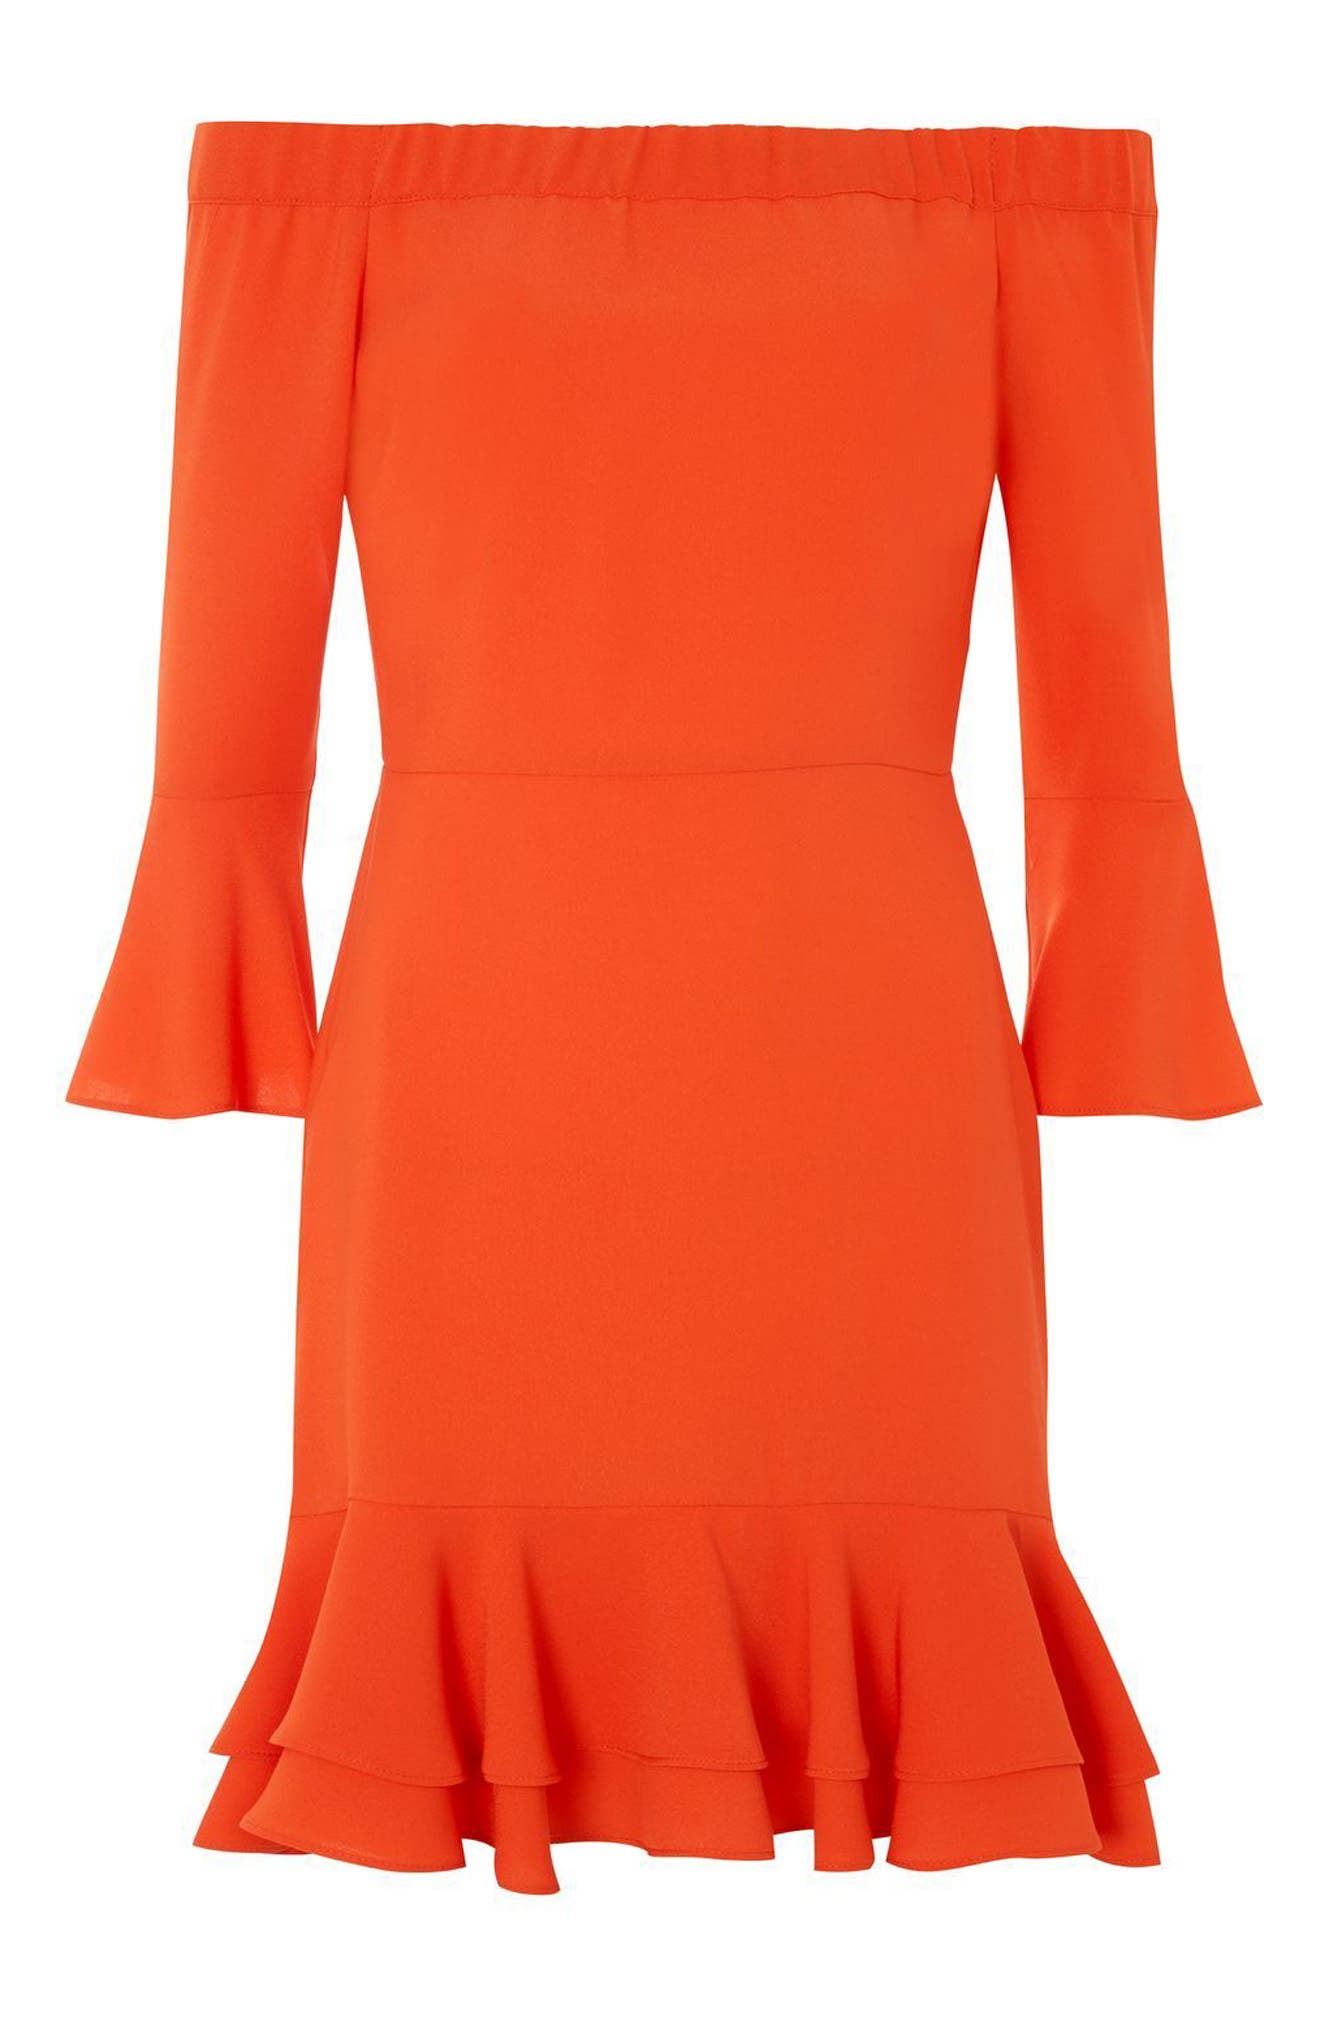 Topshop Off the Shoulder Ruffle Dress